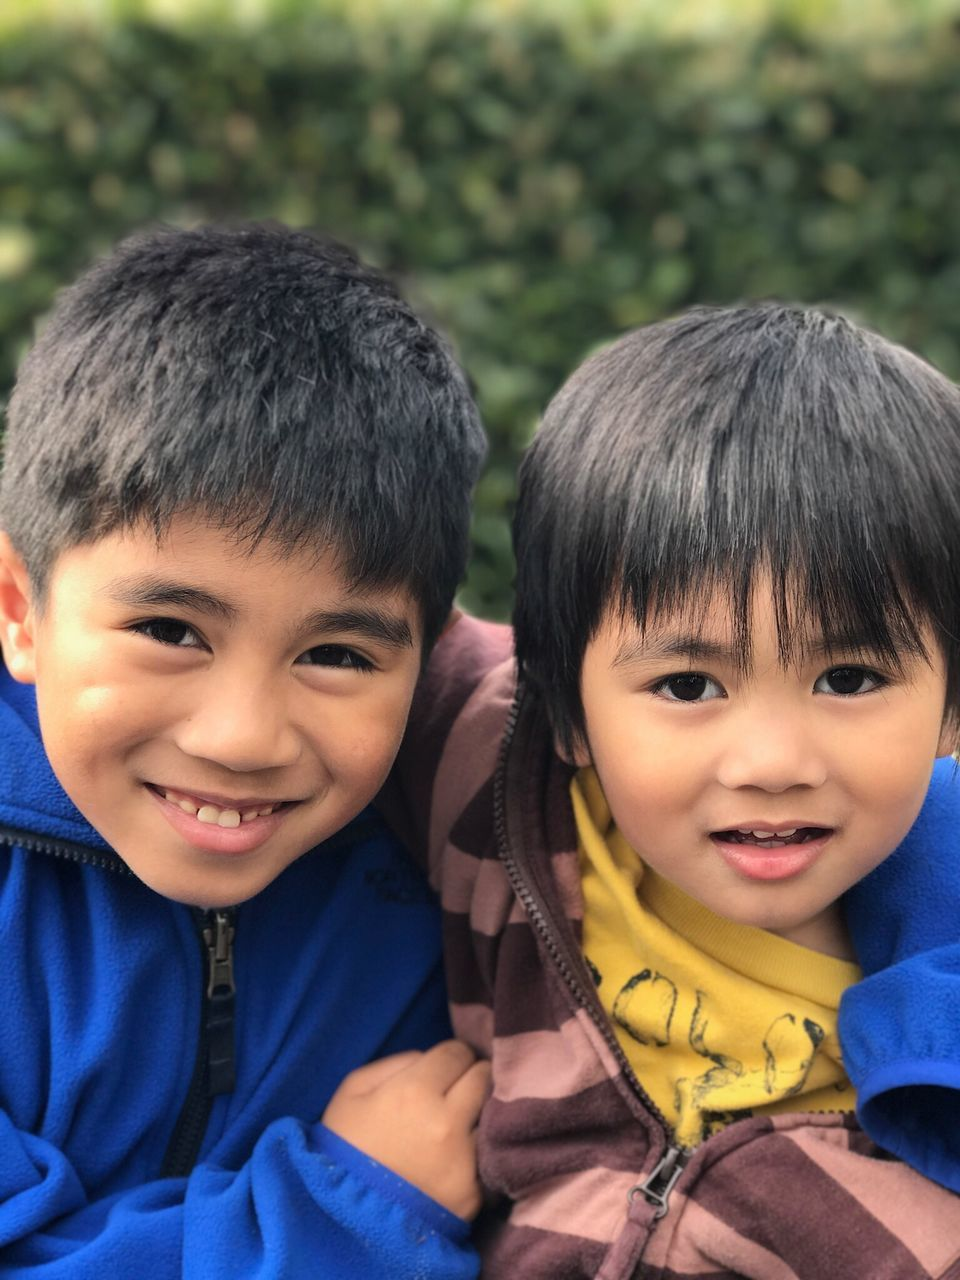 two people, looking at camera, childhood, smiling, real people, boys, portrait, innocence, sibling, happiness, black hair, togetherness, bonding, cute, outdoors, day, cheerful, friendship, close-up